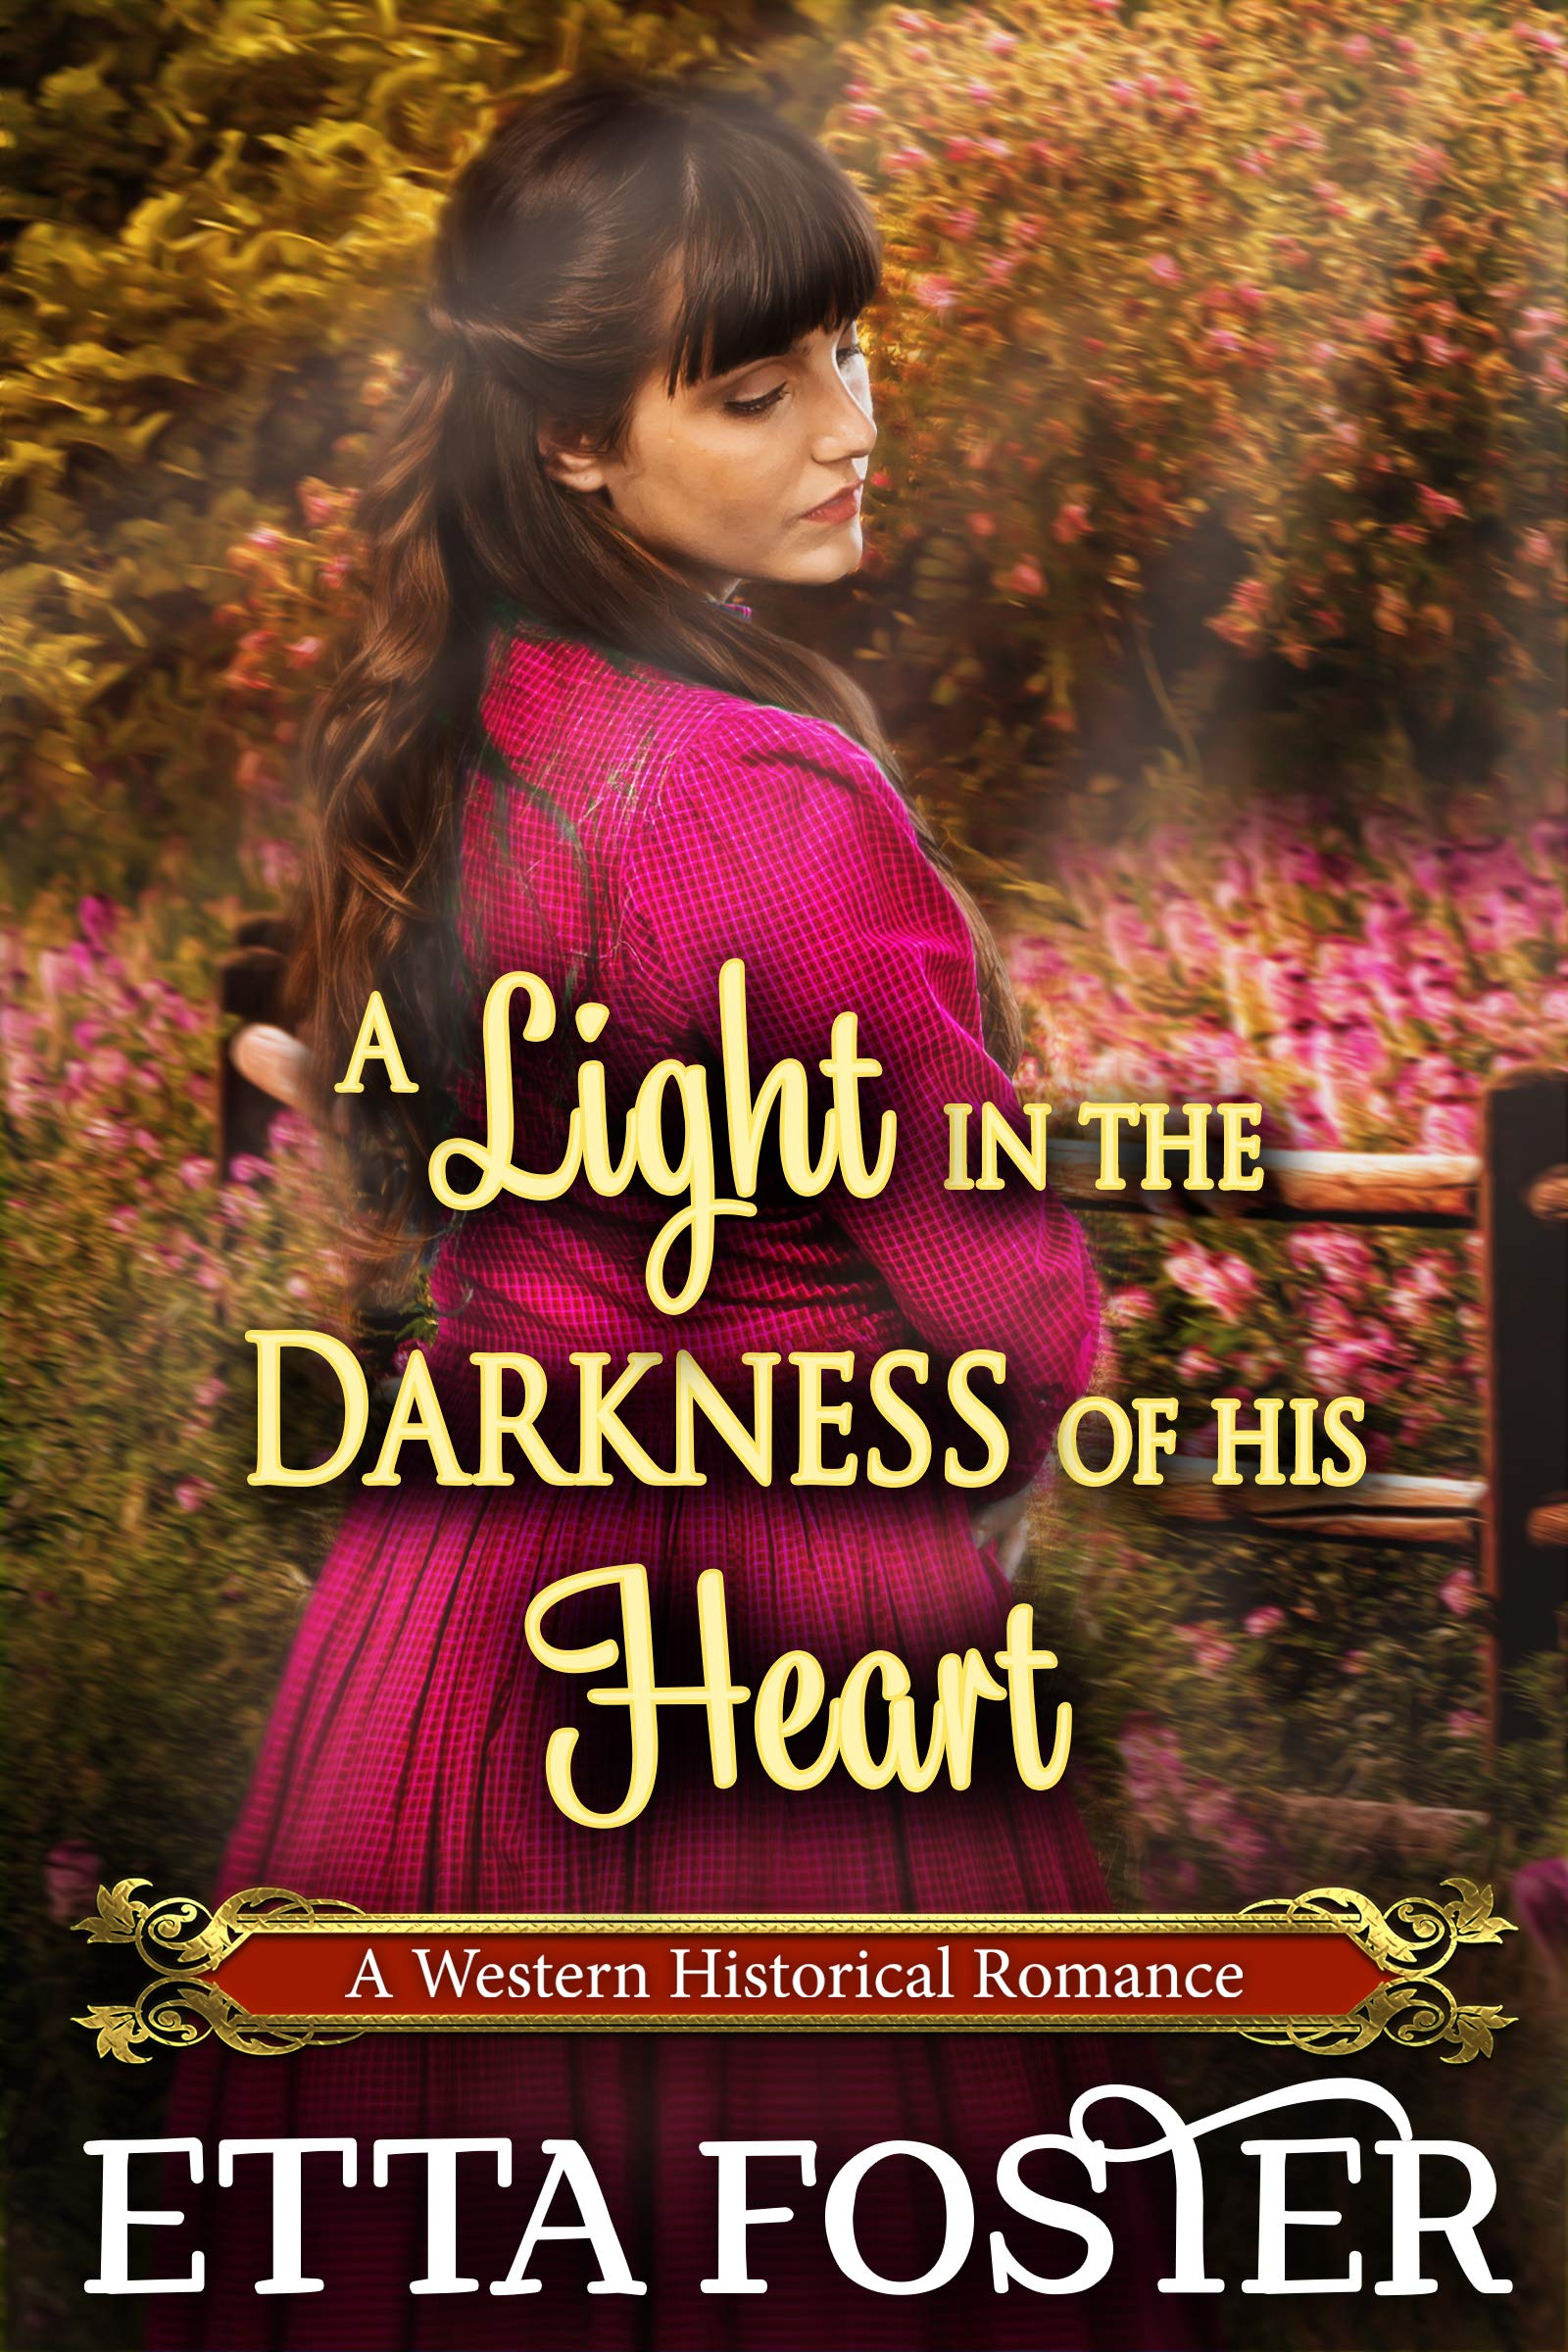 A Light in the Darkness of his Heart